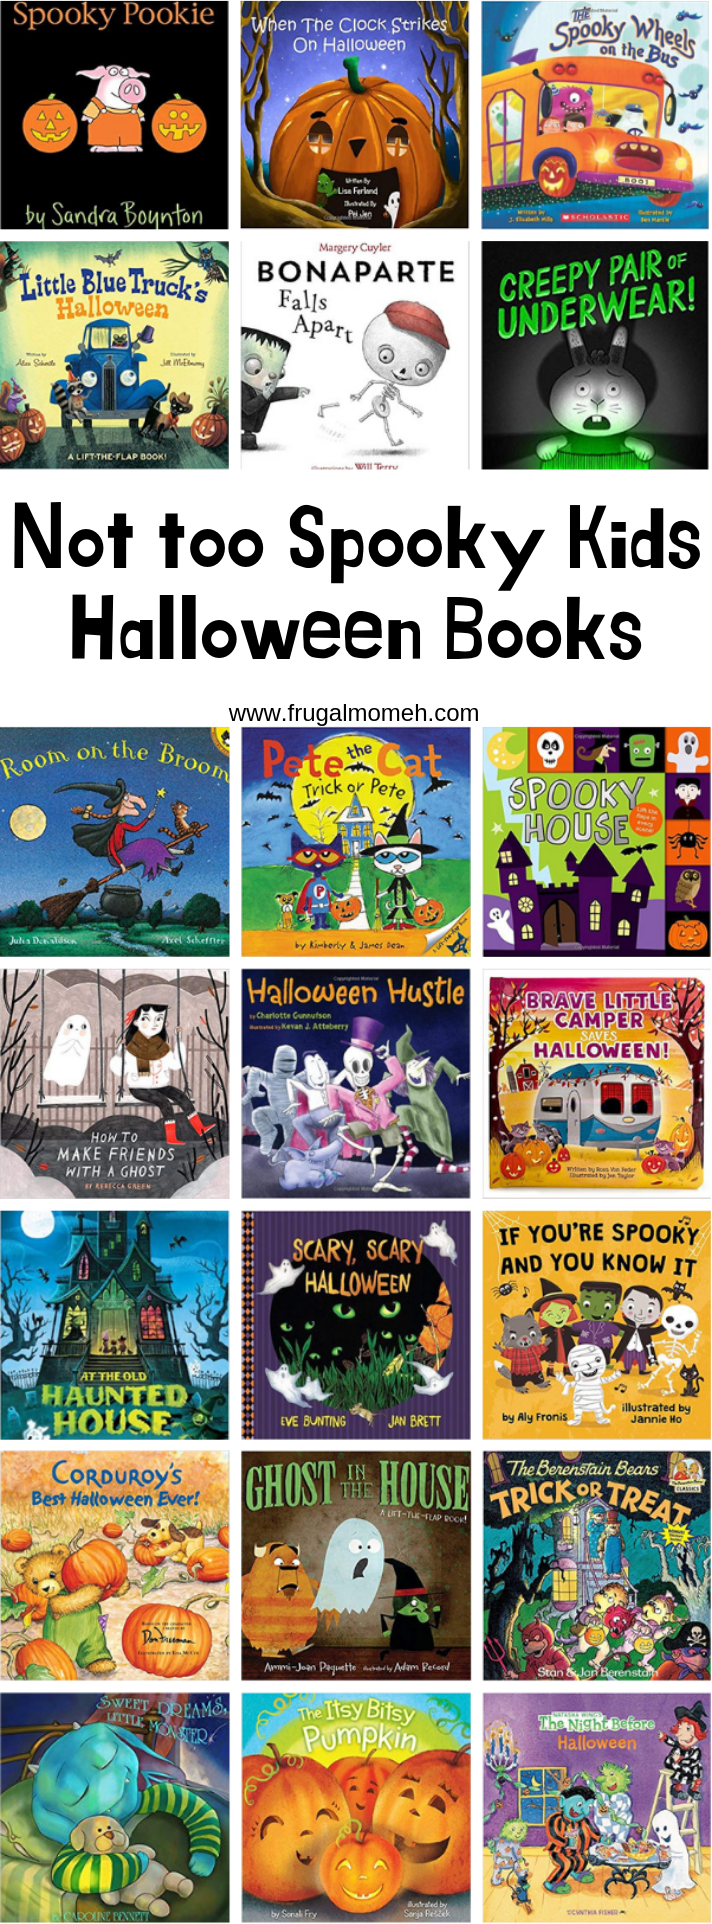 "Your kids will love sitting down and reading these ""not too spooky kids Halloween books"". Perfect for celebrating the season with little ones!"